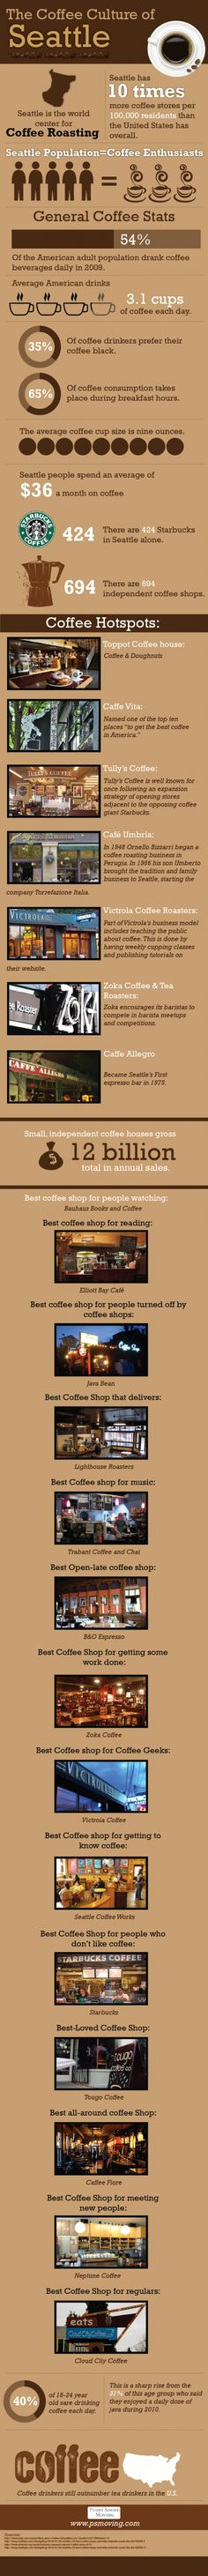 So Interesting an great recommendations The Coffee